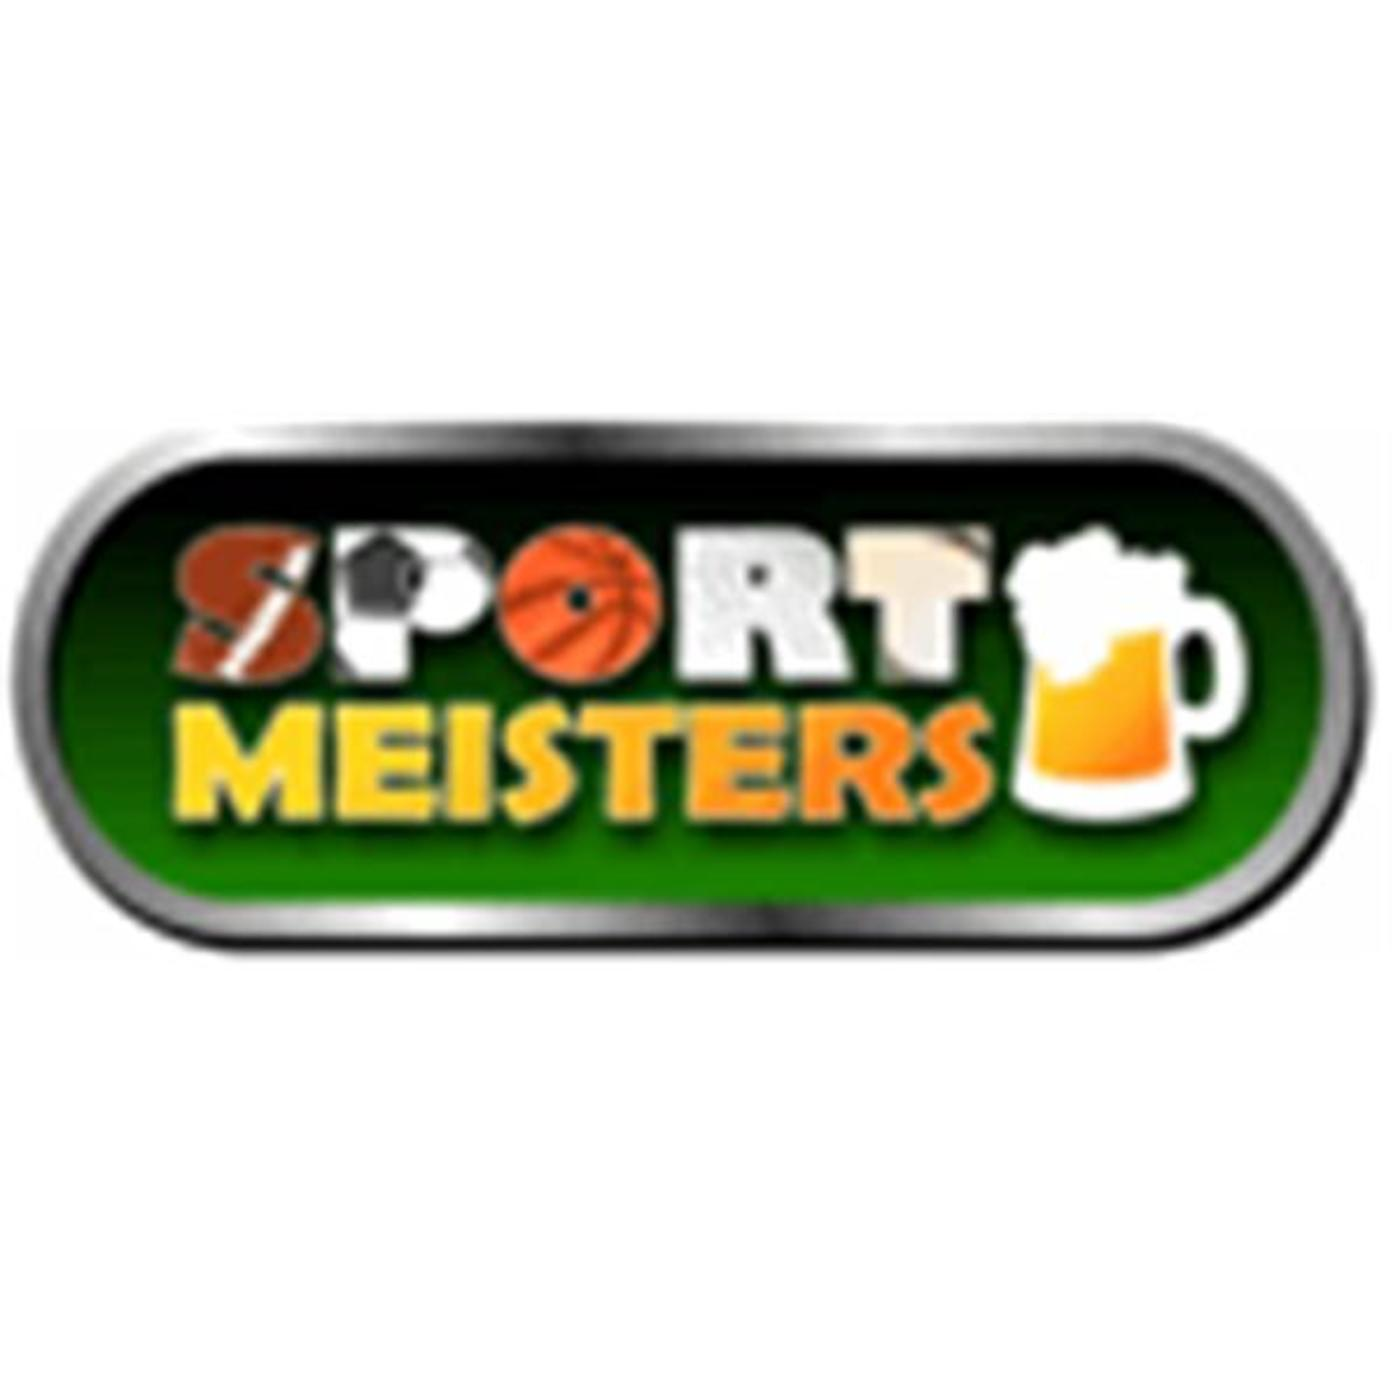 Sportmeisters